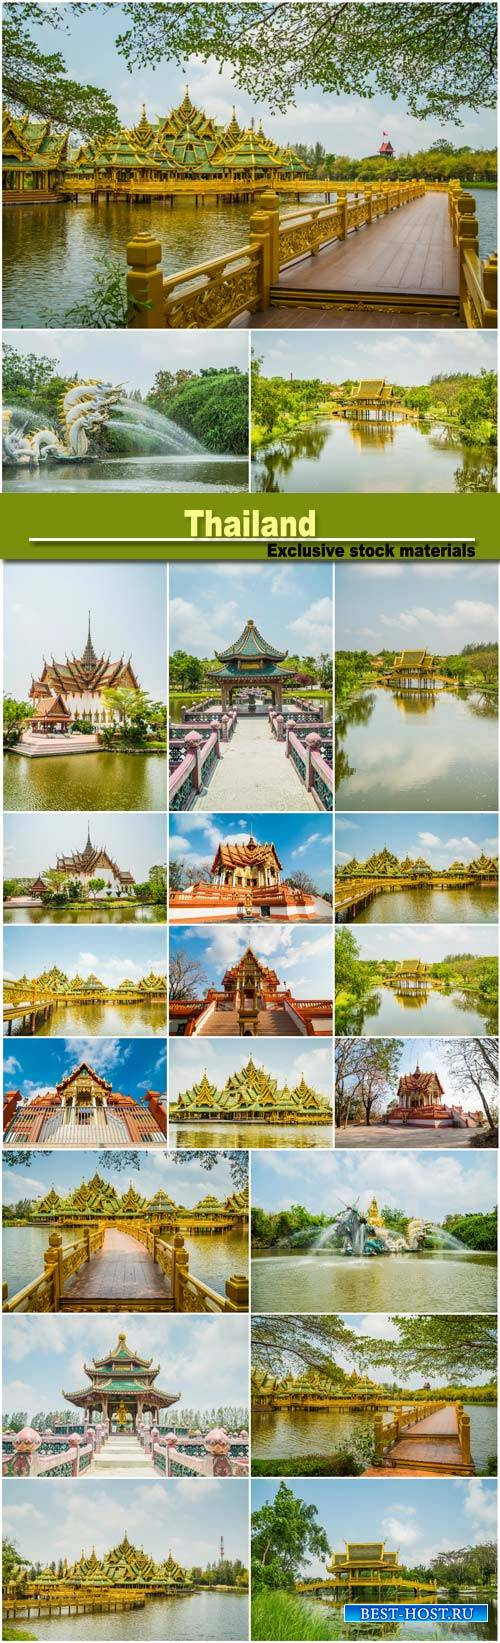 Pavilion of the Enlightened, Ancient City, Thailand